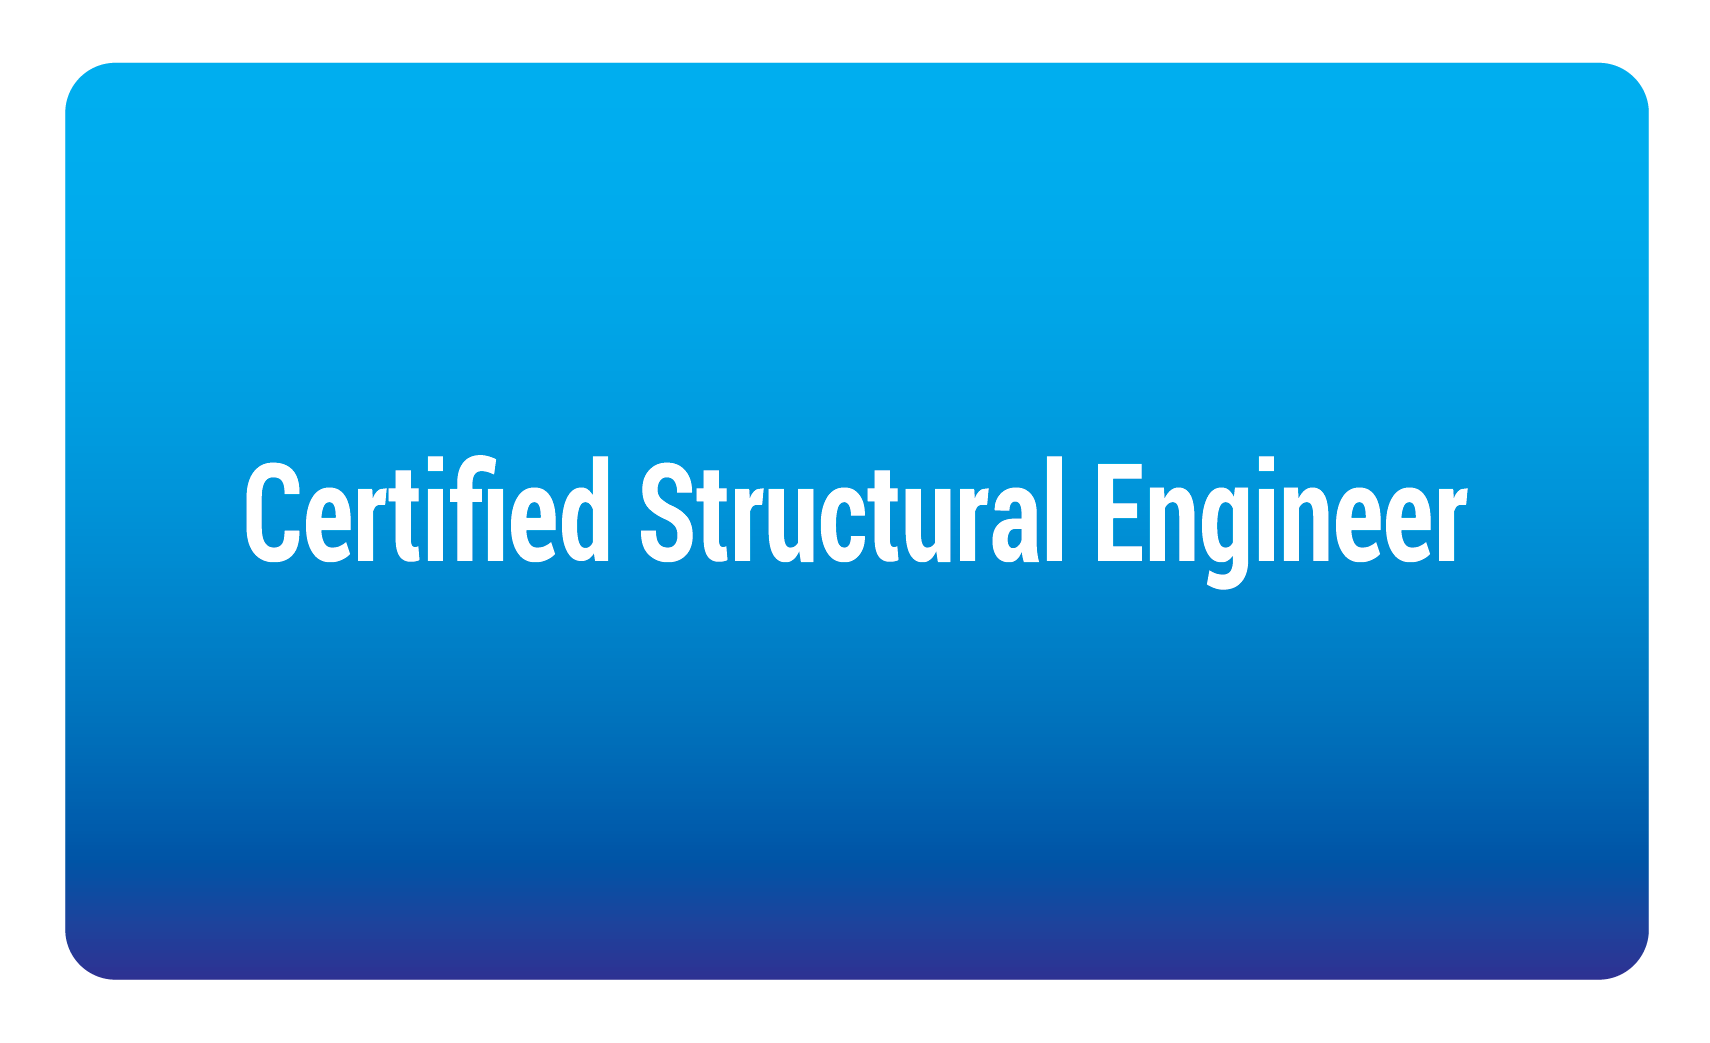 certified structural engineer